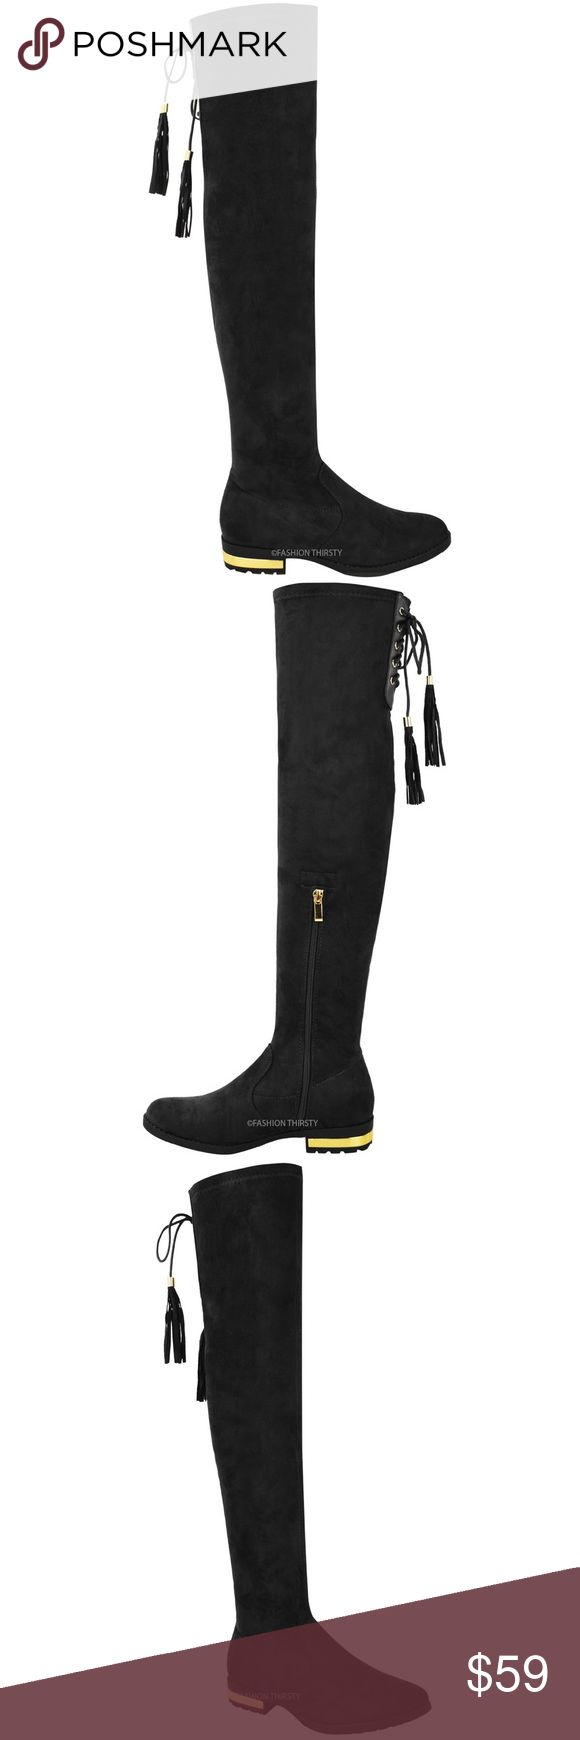 Black faux suede gold heel thigh over knee boot Imported from Italy, These fabulous one of a kind boots offer both comfort and style. Features stretch faux suede material, comfy padded flat sole with rubber outsole, lace up tassel/ fringe tie on back, gold mirror metal on back of heels. These boots are stretchy. Brand new in original packaging with dust bags. True to size 10. You won't find these rare gems in the USA. 🚫price is firm/ no offers🚫. Shoes Over the Knee Boots